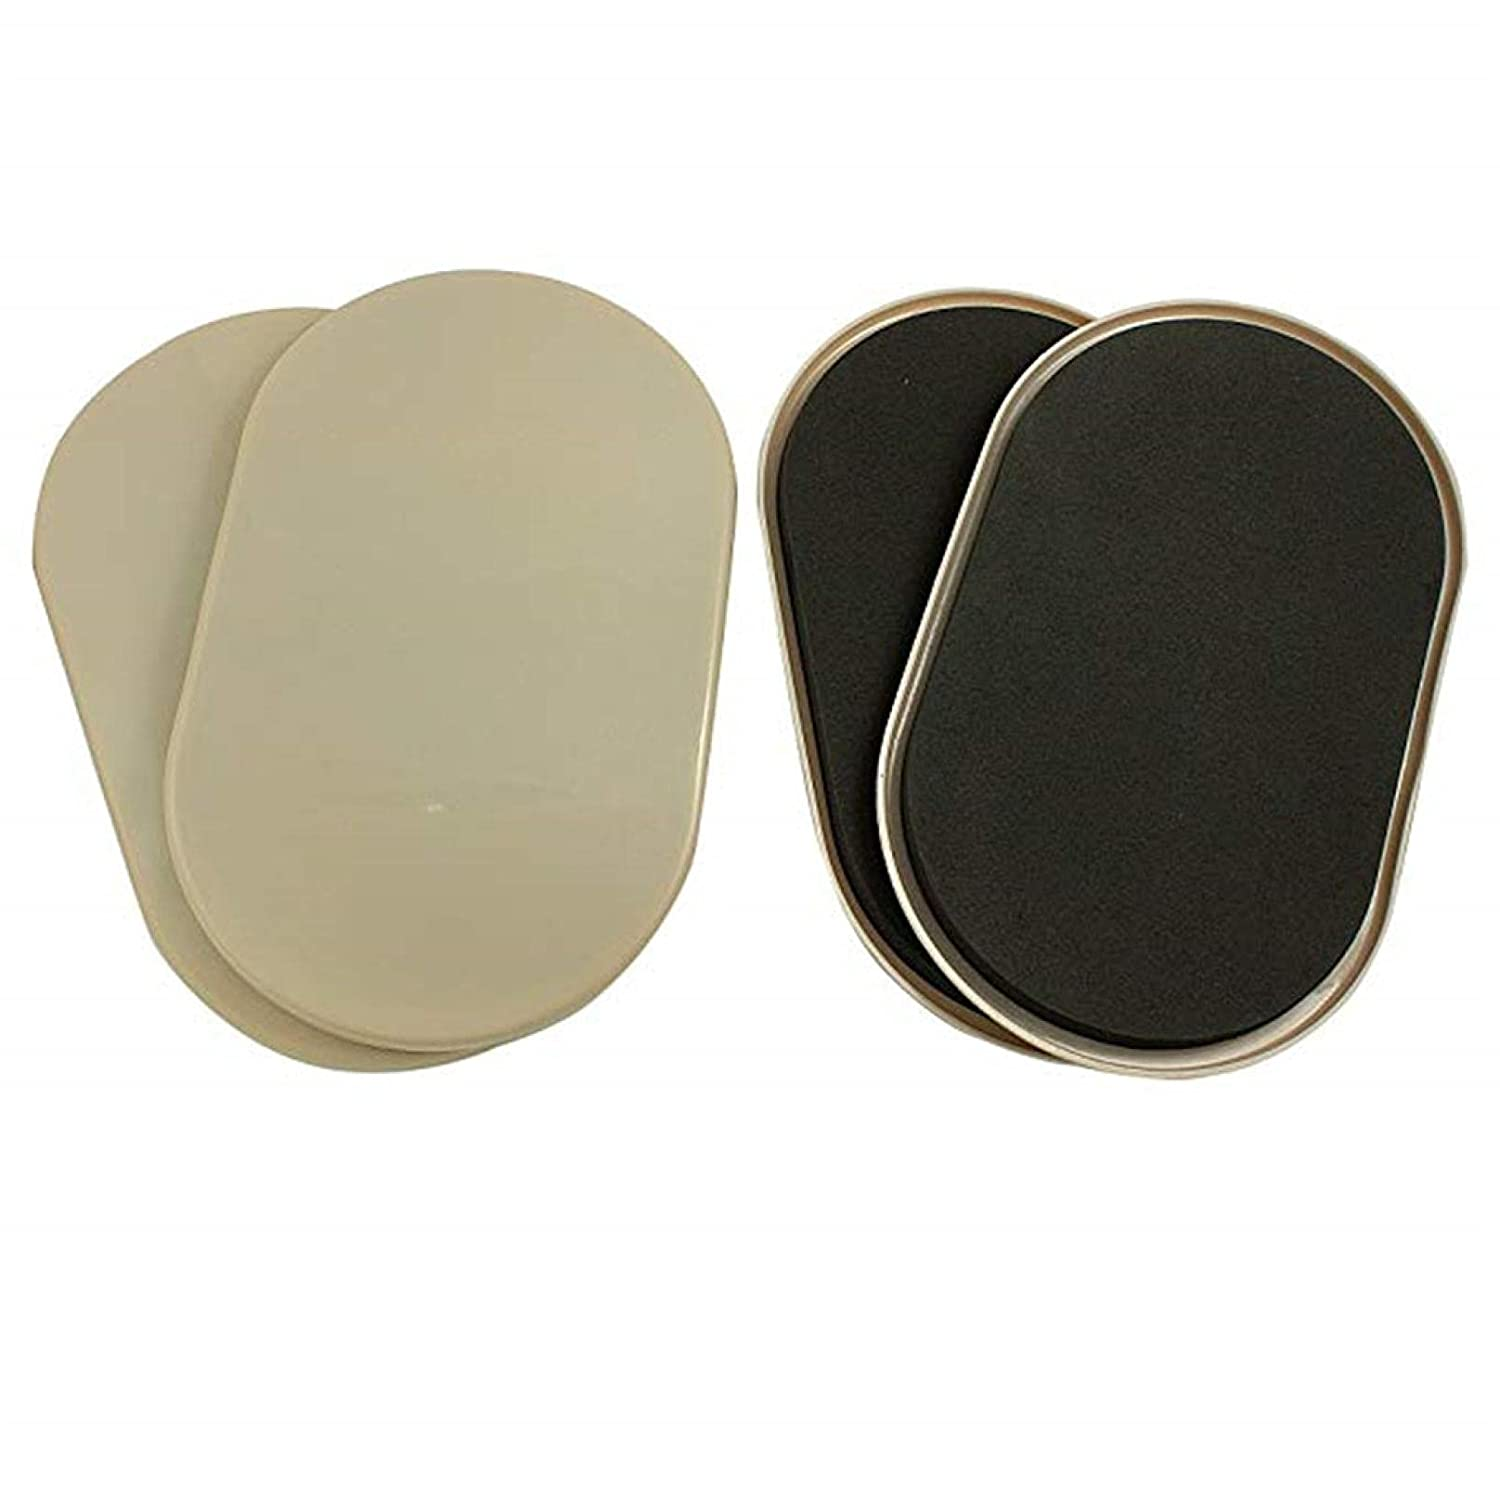 Reusable Oval Carpet Furniture Sliders 3.5x 6 inches 4-Pack in Resealable Bag (4PC)